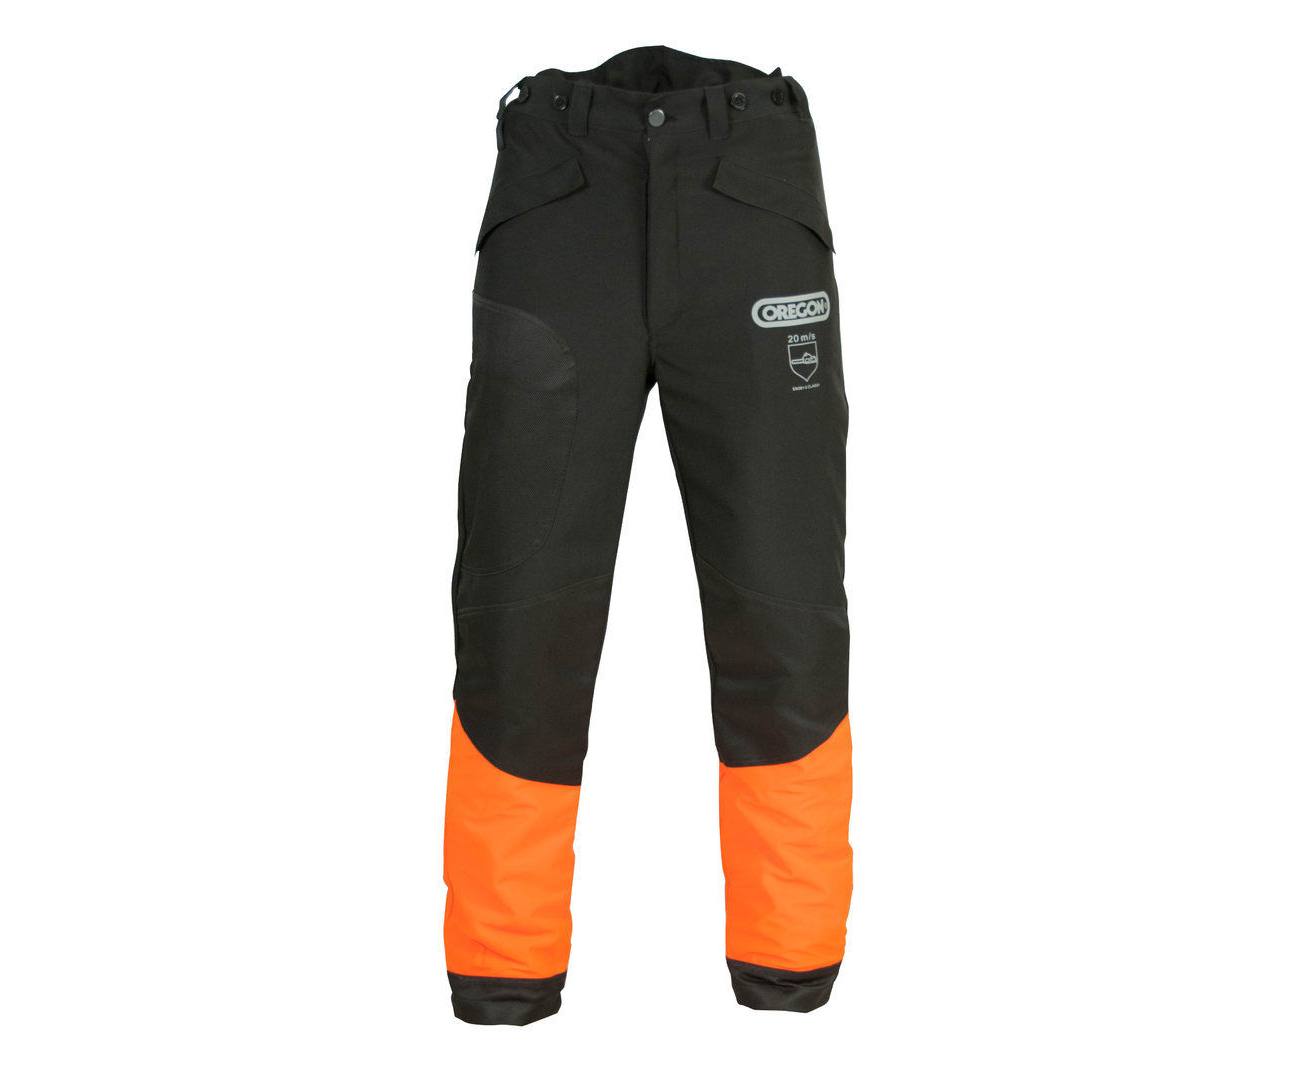 Oregon Waipoua chainsaw trousers (Type A, Class 1)